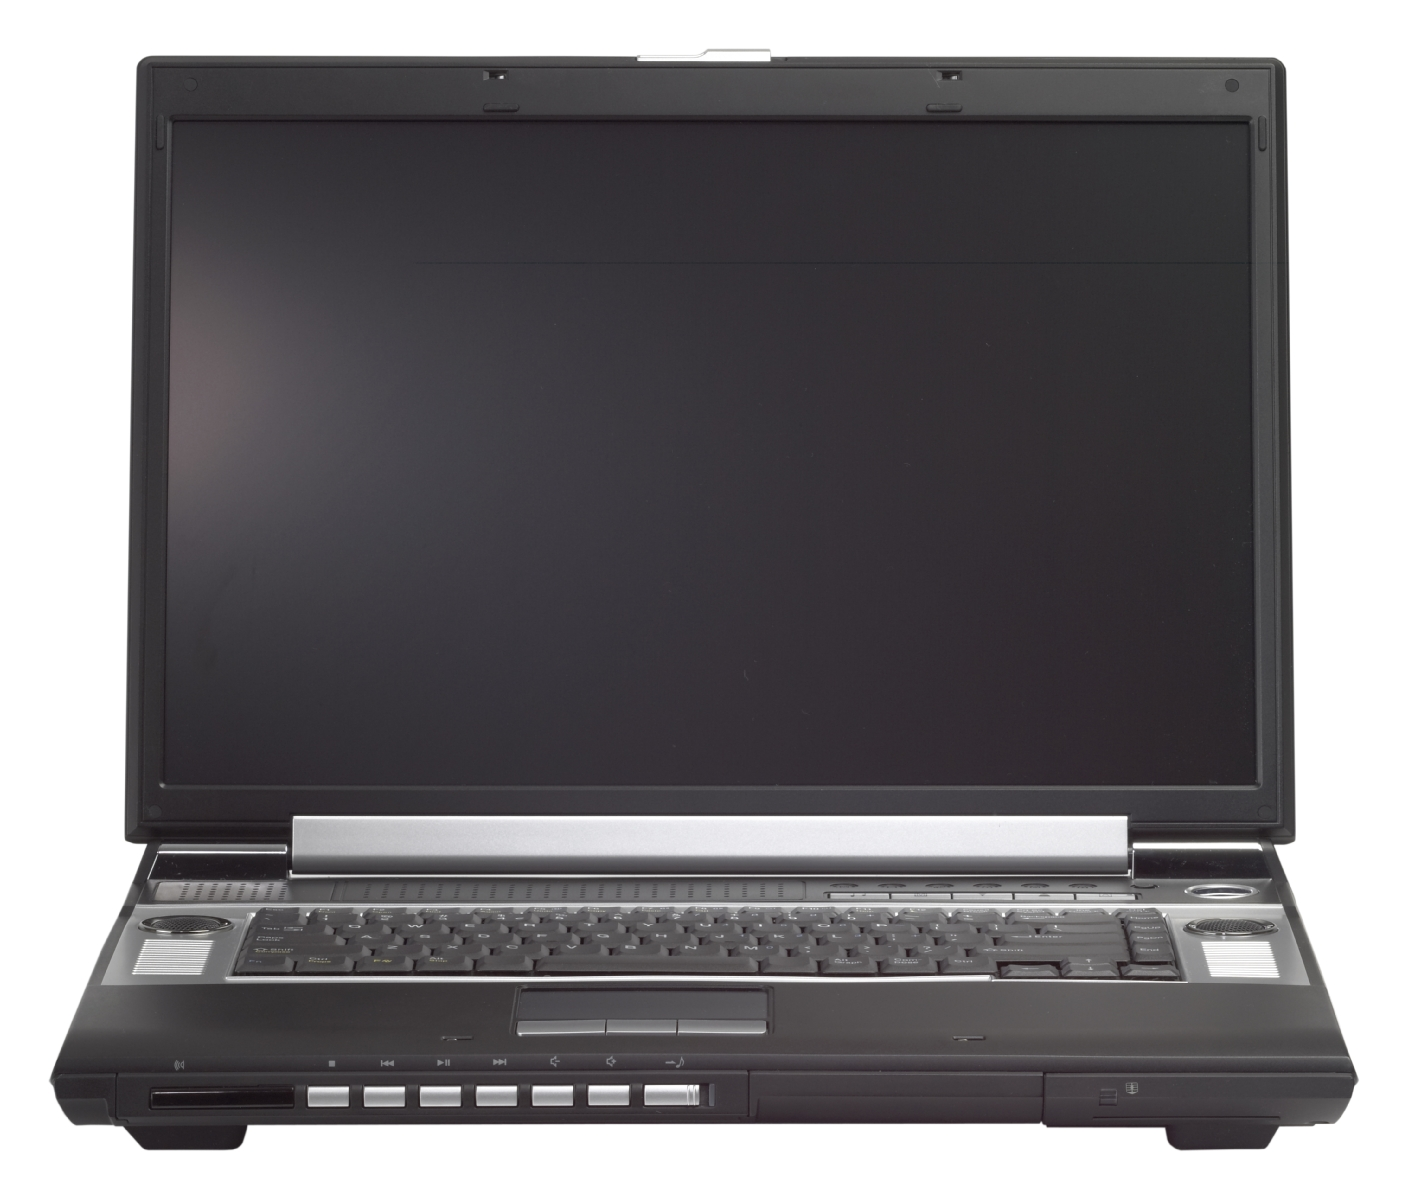 Sun Ultra 3 Mobile Workstation Review